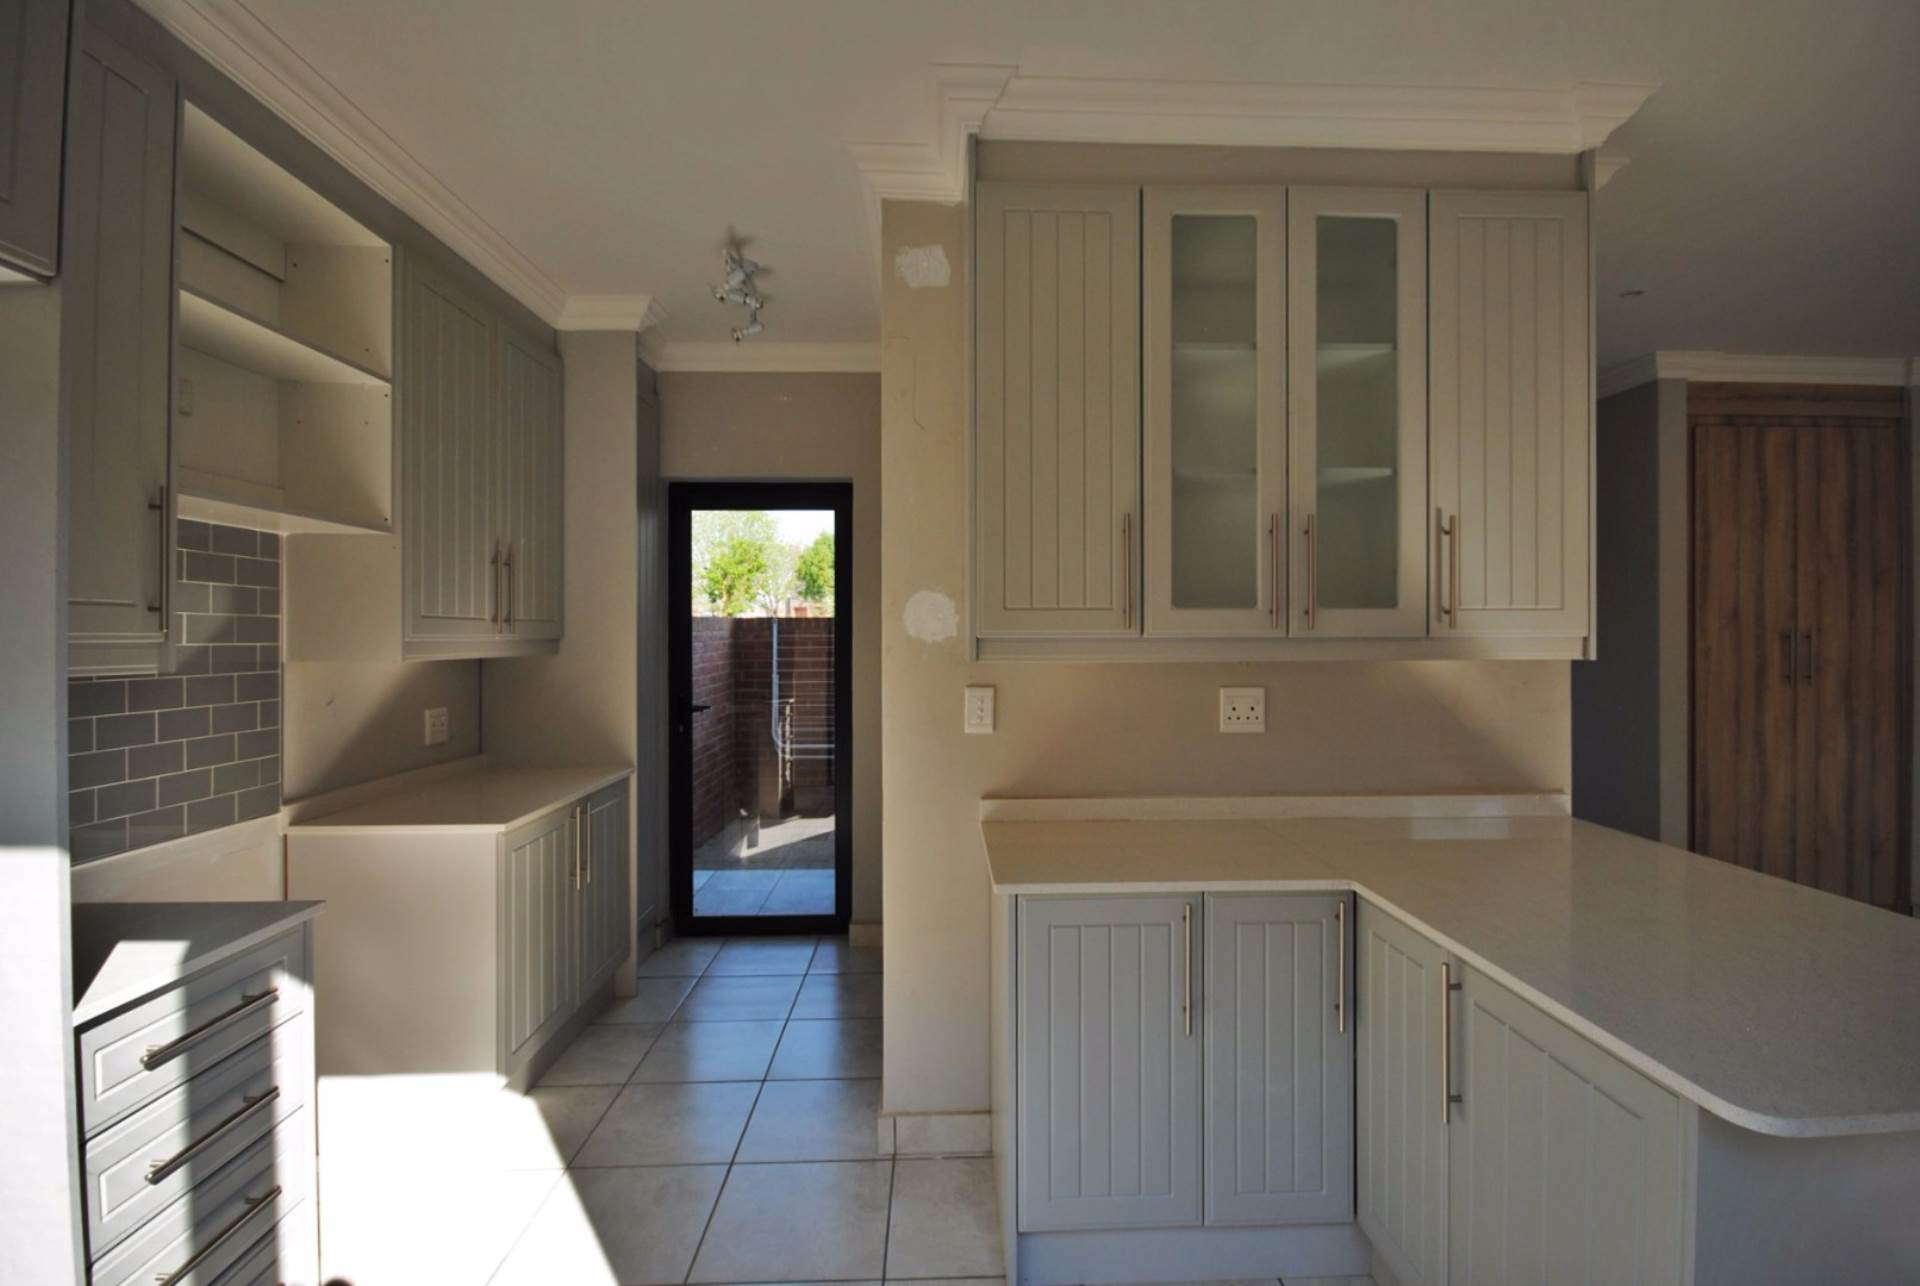 3 BedroomTownhouse To Rent In Heritage Hill